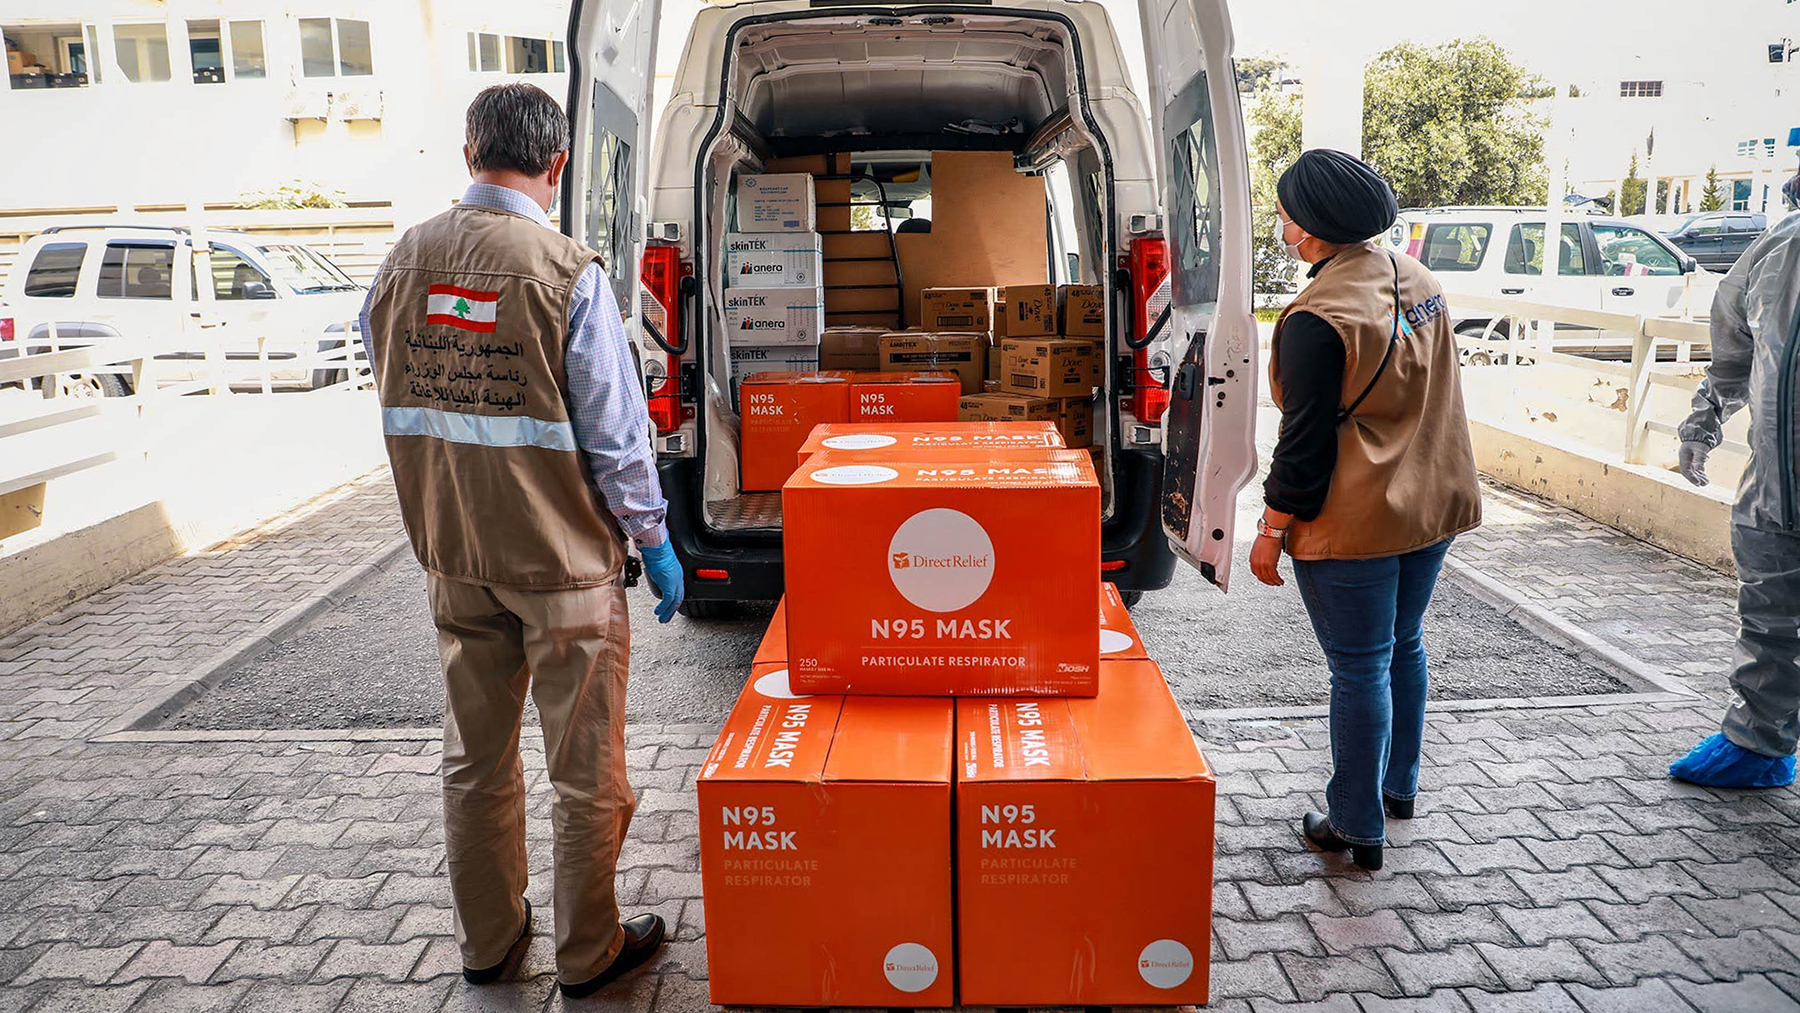 Protective gear from Direct Relief arrives at Rafik Hariri University Hospital in Lebanon in April 2020. Nonprofit organization Anera distributed the shipment, which included oxygen concentrators, N95 respirator masks, gloves, shoe covers, surgical caps, soap bars, and face shields. (Anera photo)